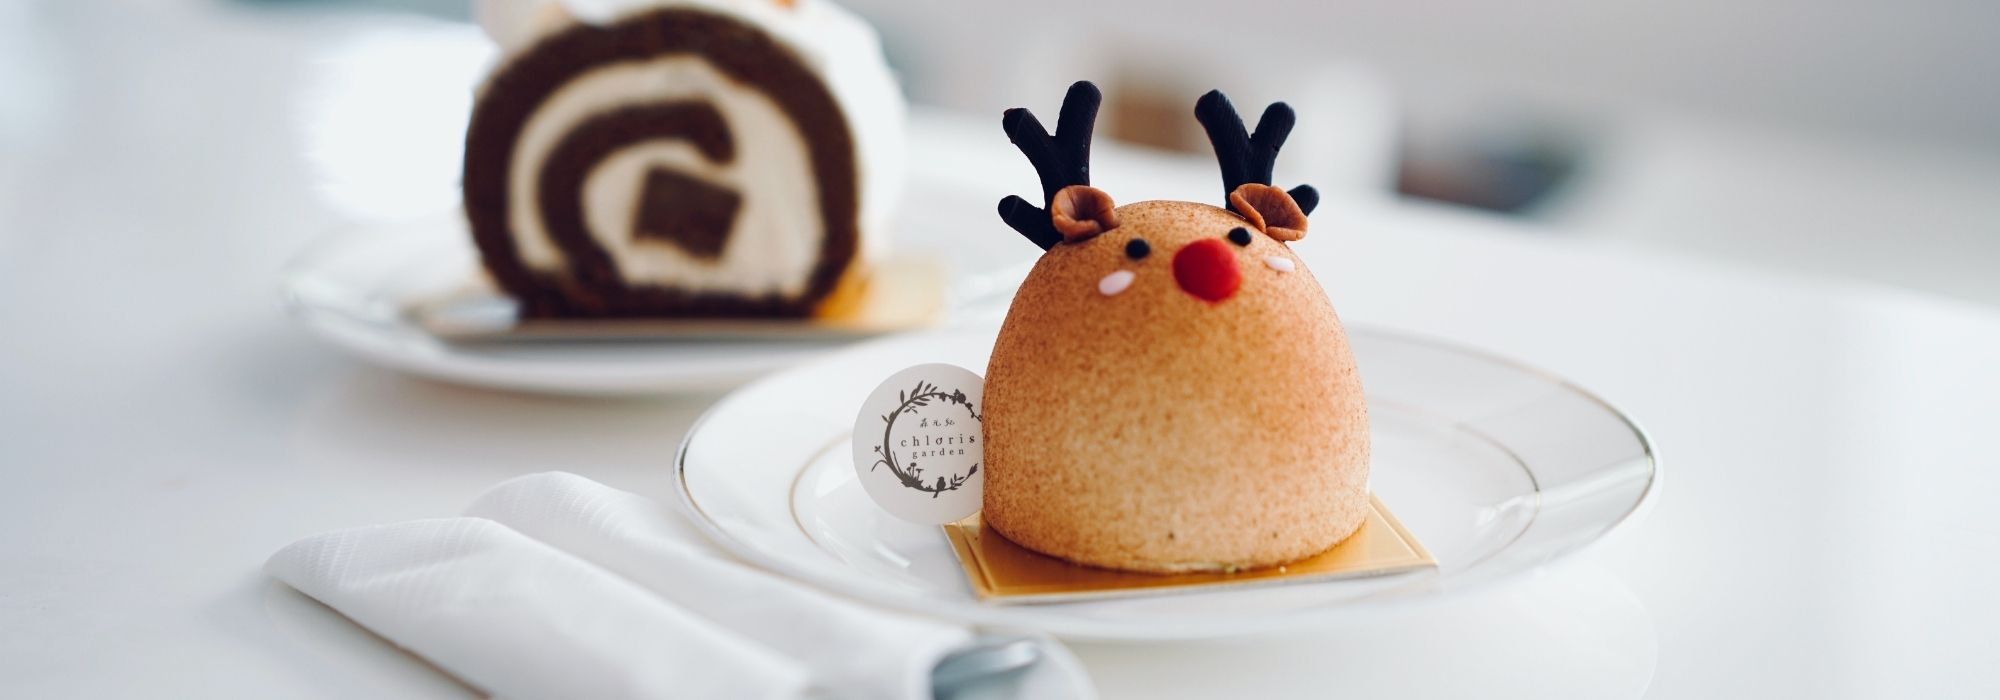 Skip the hassle and dine out this Christmas